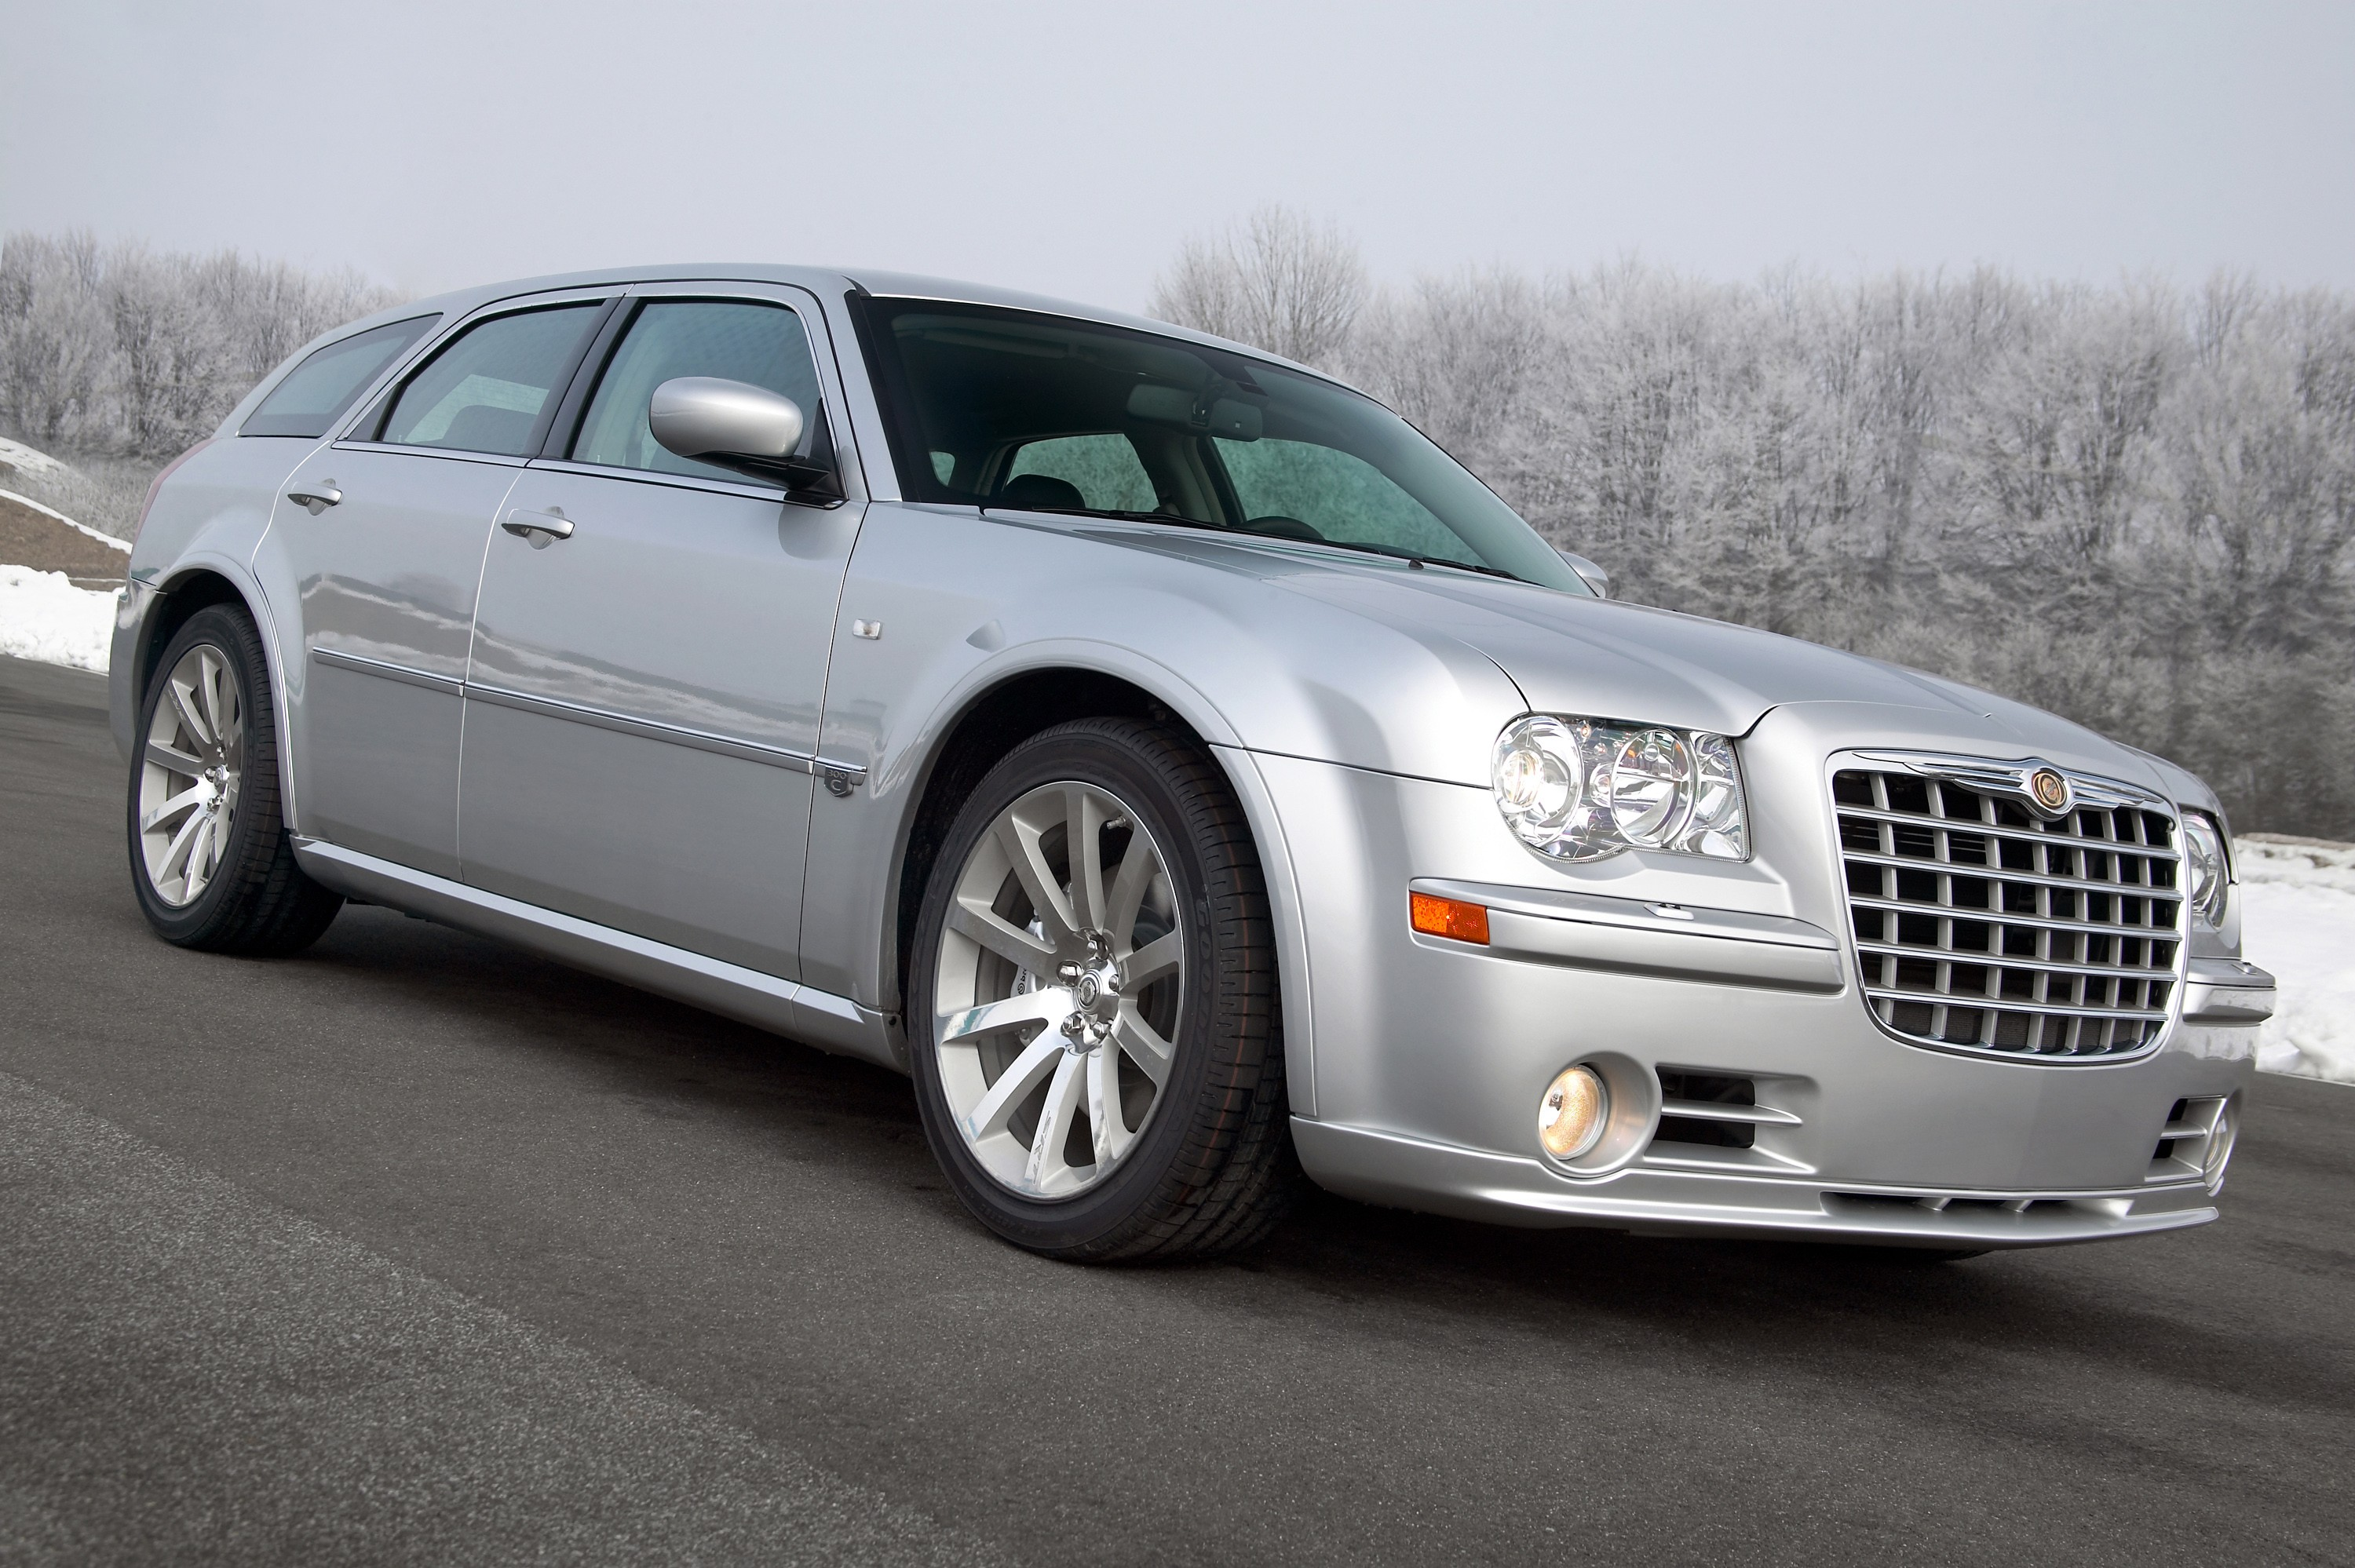 chrysler 300c touring srt8 specs 2006 2007 2008 2009. Black Bedroom Furniture Sets. Home Design Ideas